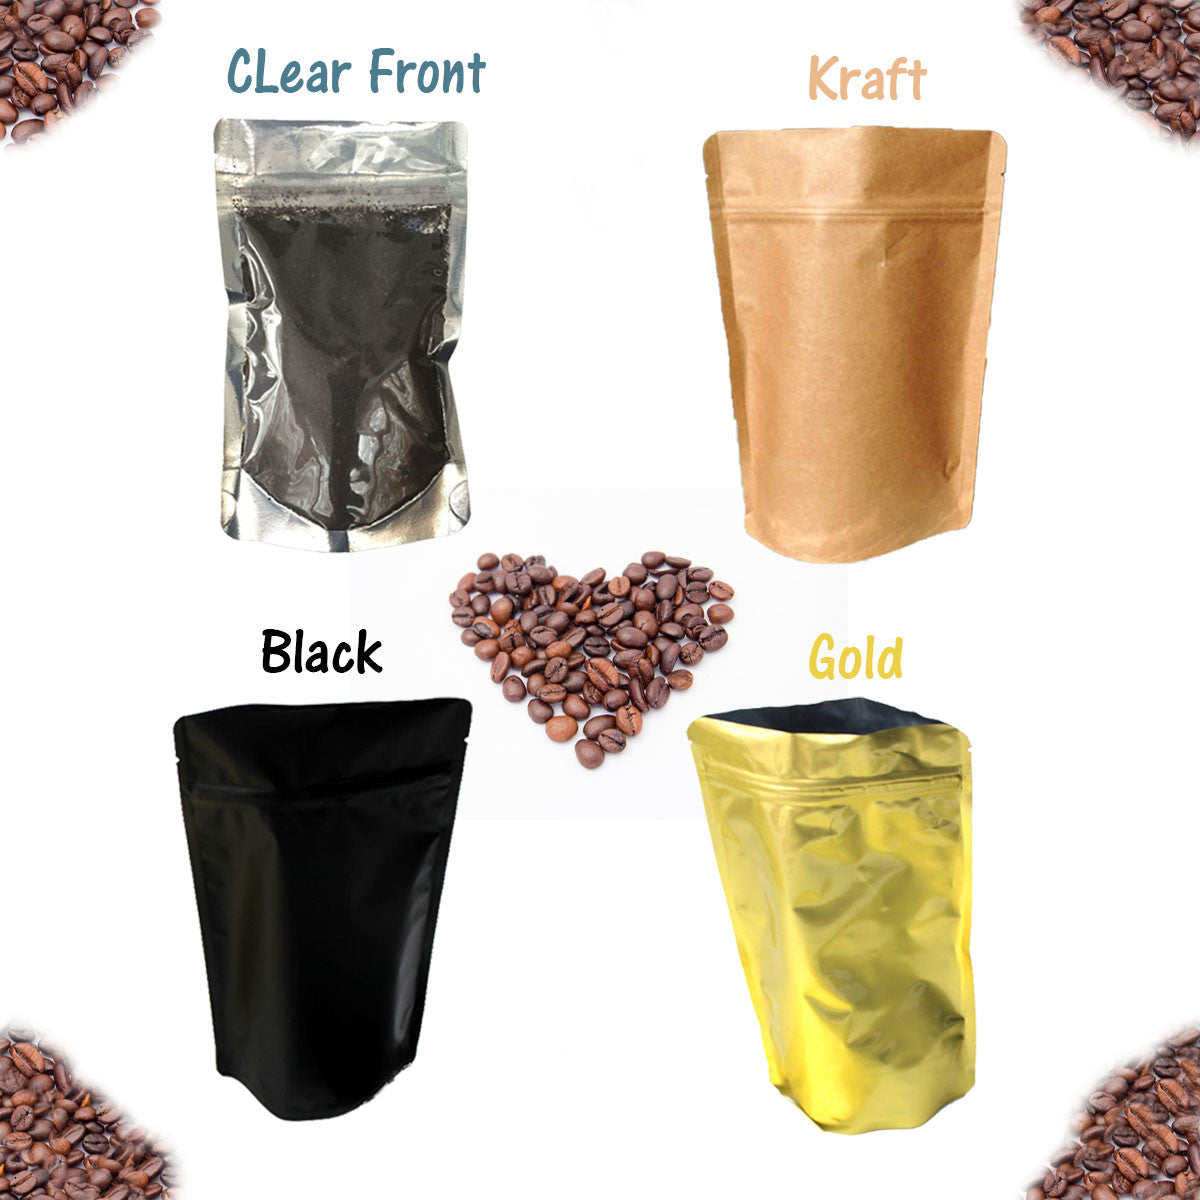 1 oz Stand Up Food Safe Resealable Foil Lined Pouch Bags, Kraft, Gold, Black, Clear Front